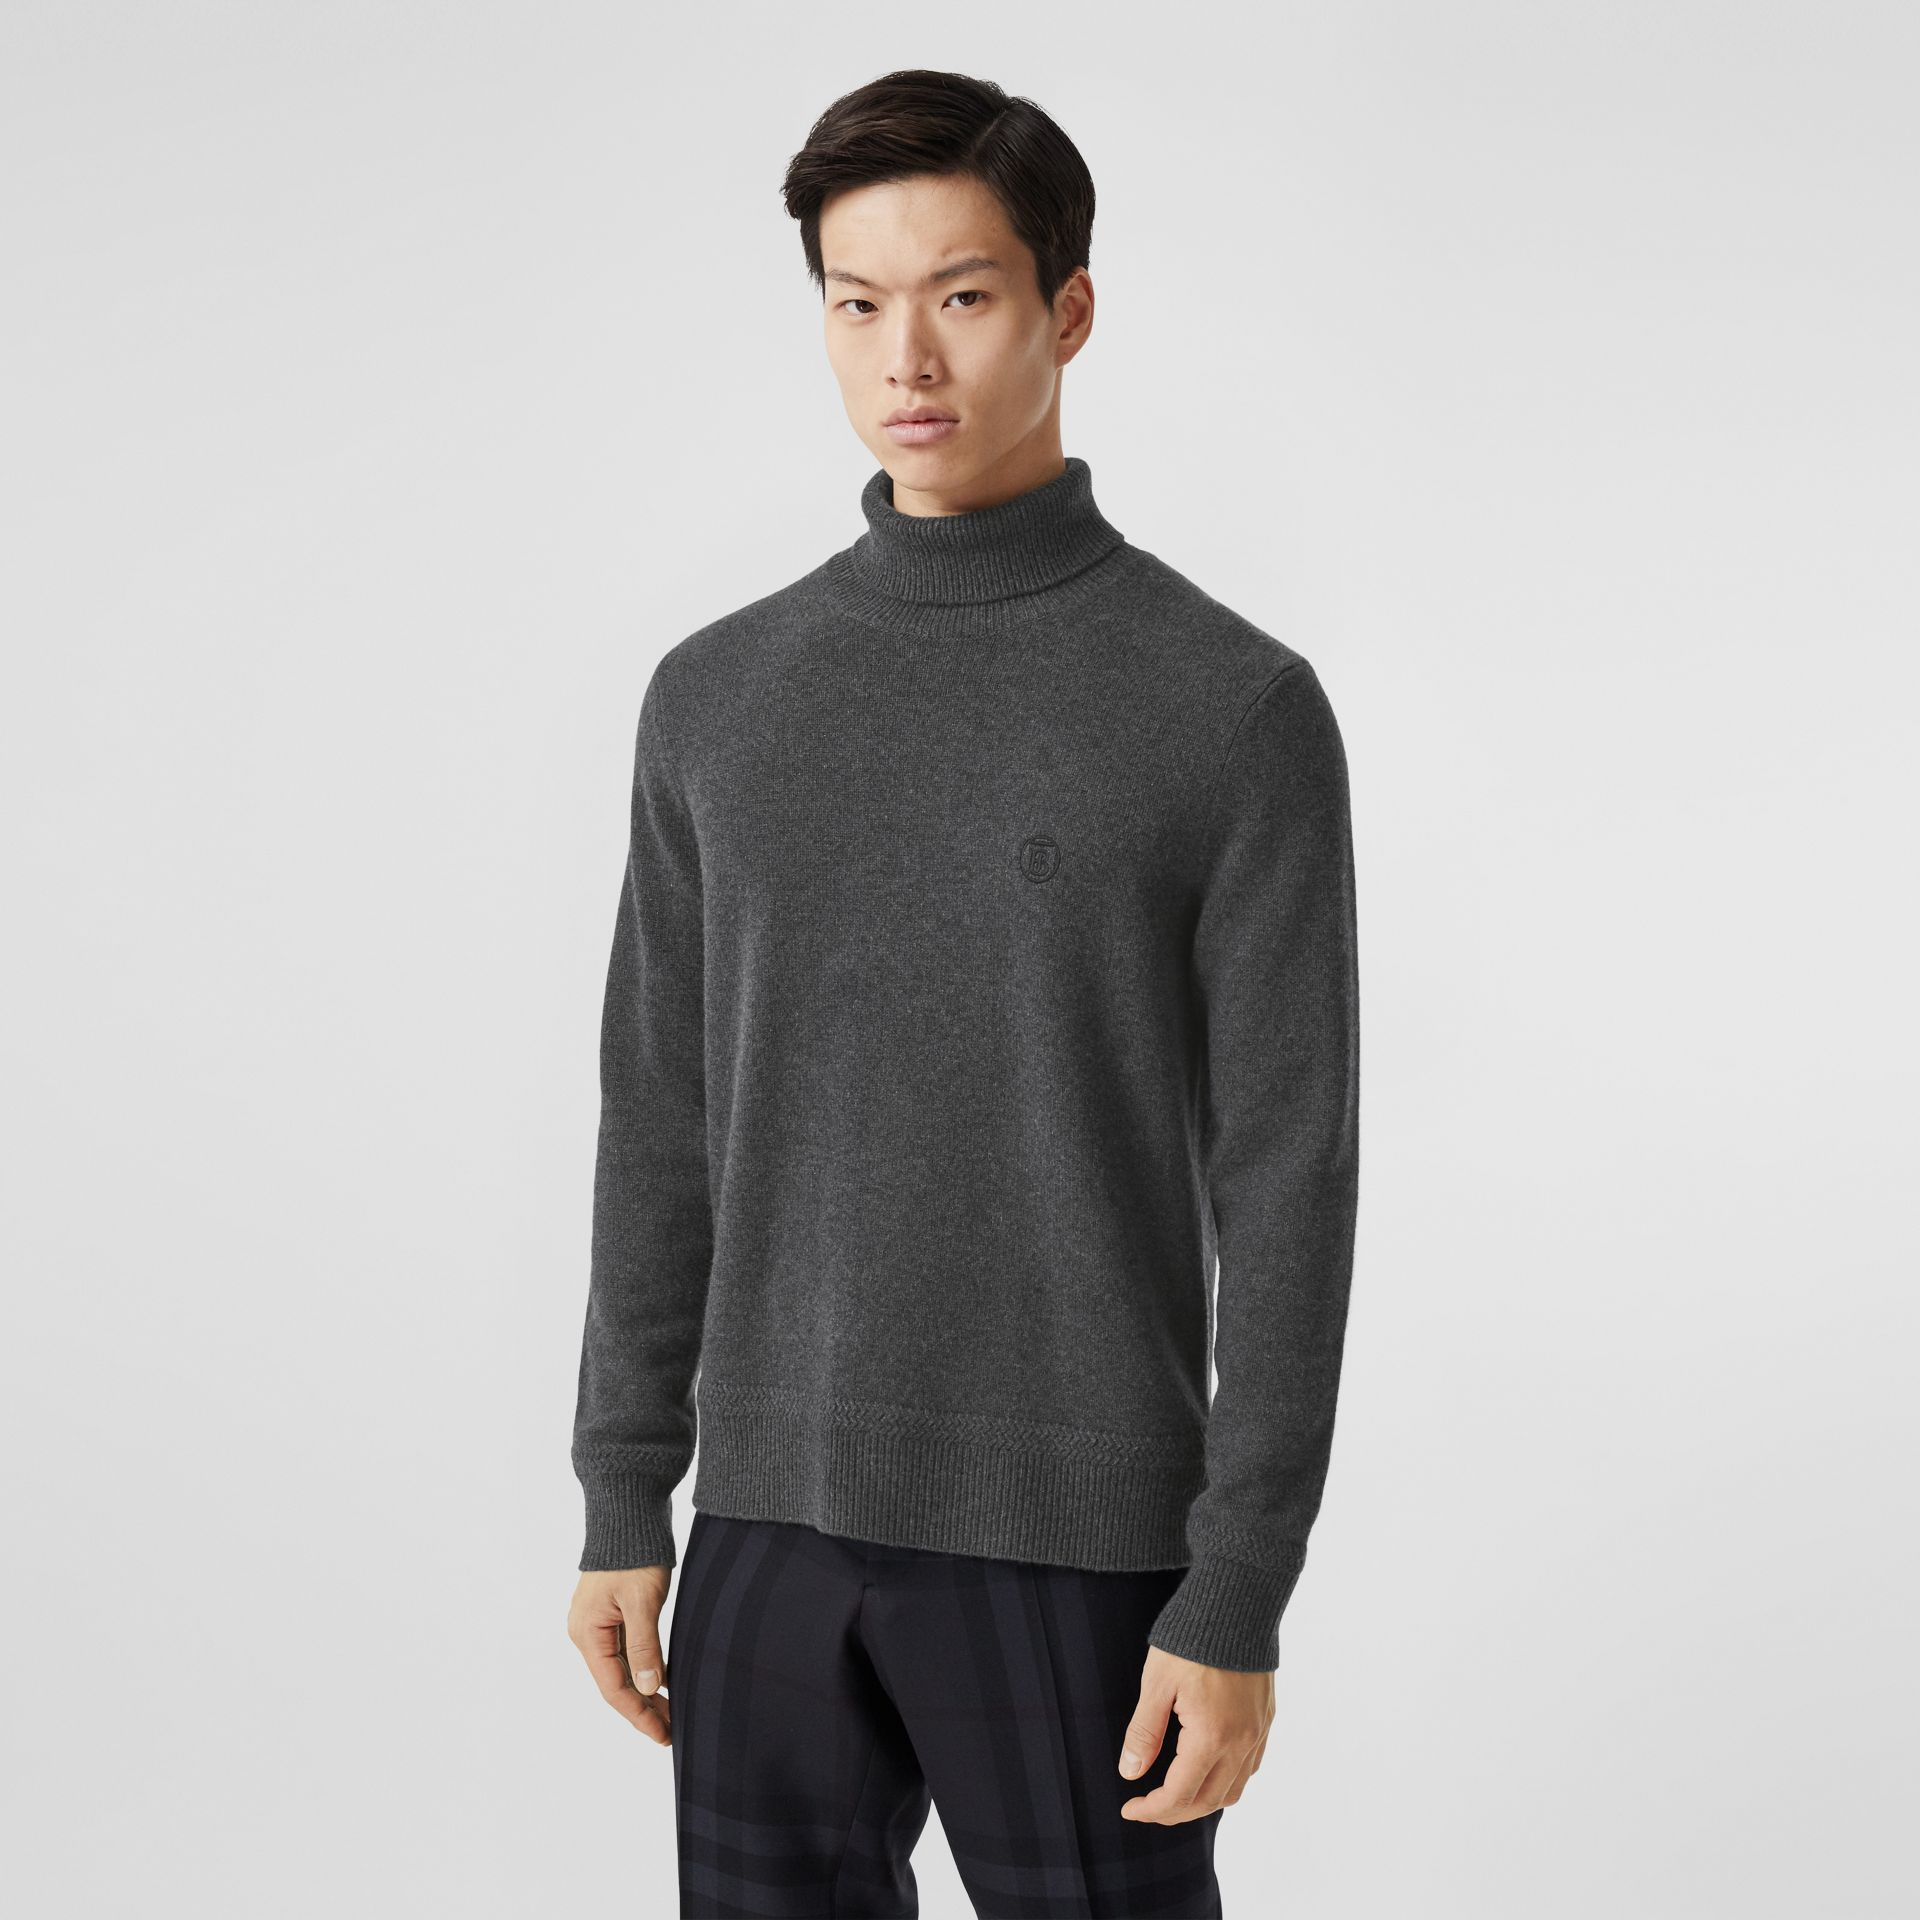 Monogram Motif Cashmere Roll-neck Sweater in Charcoal - Men | Burberry - gallery image 0